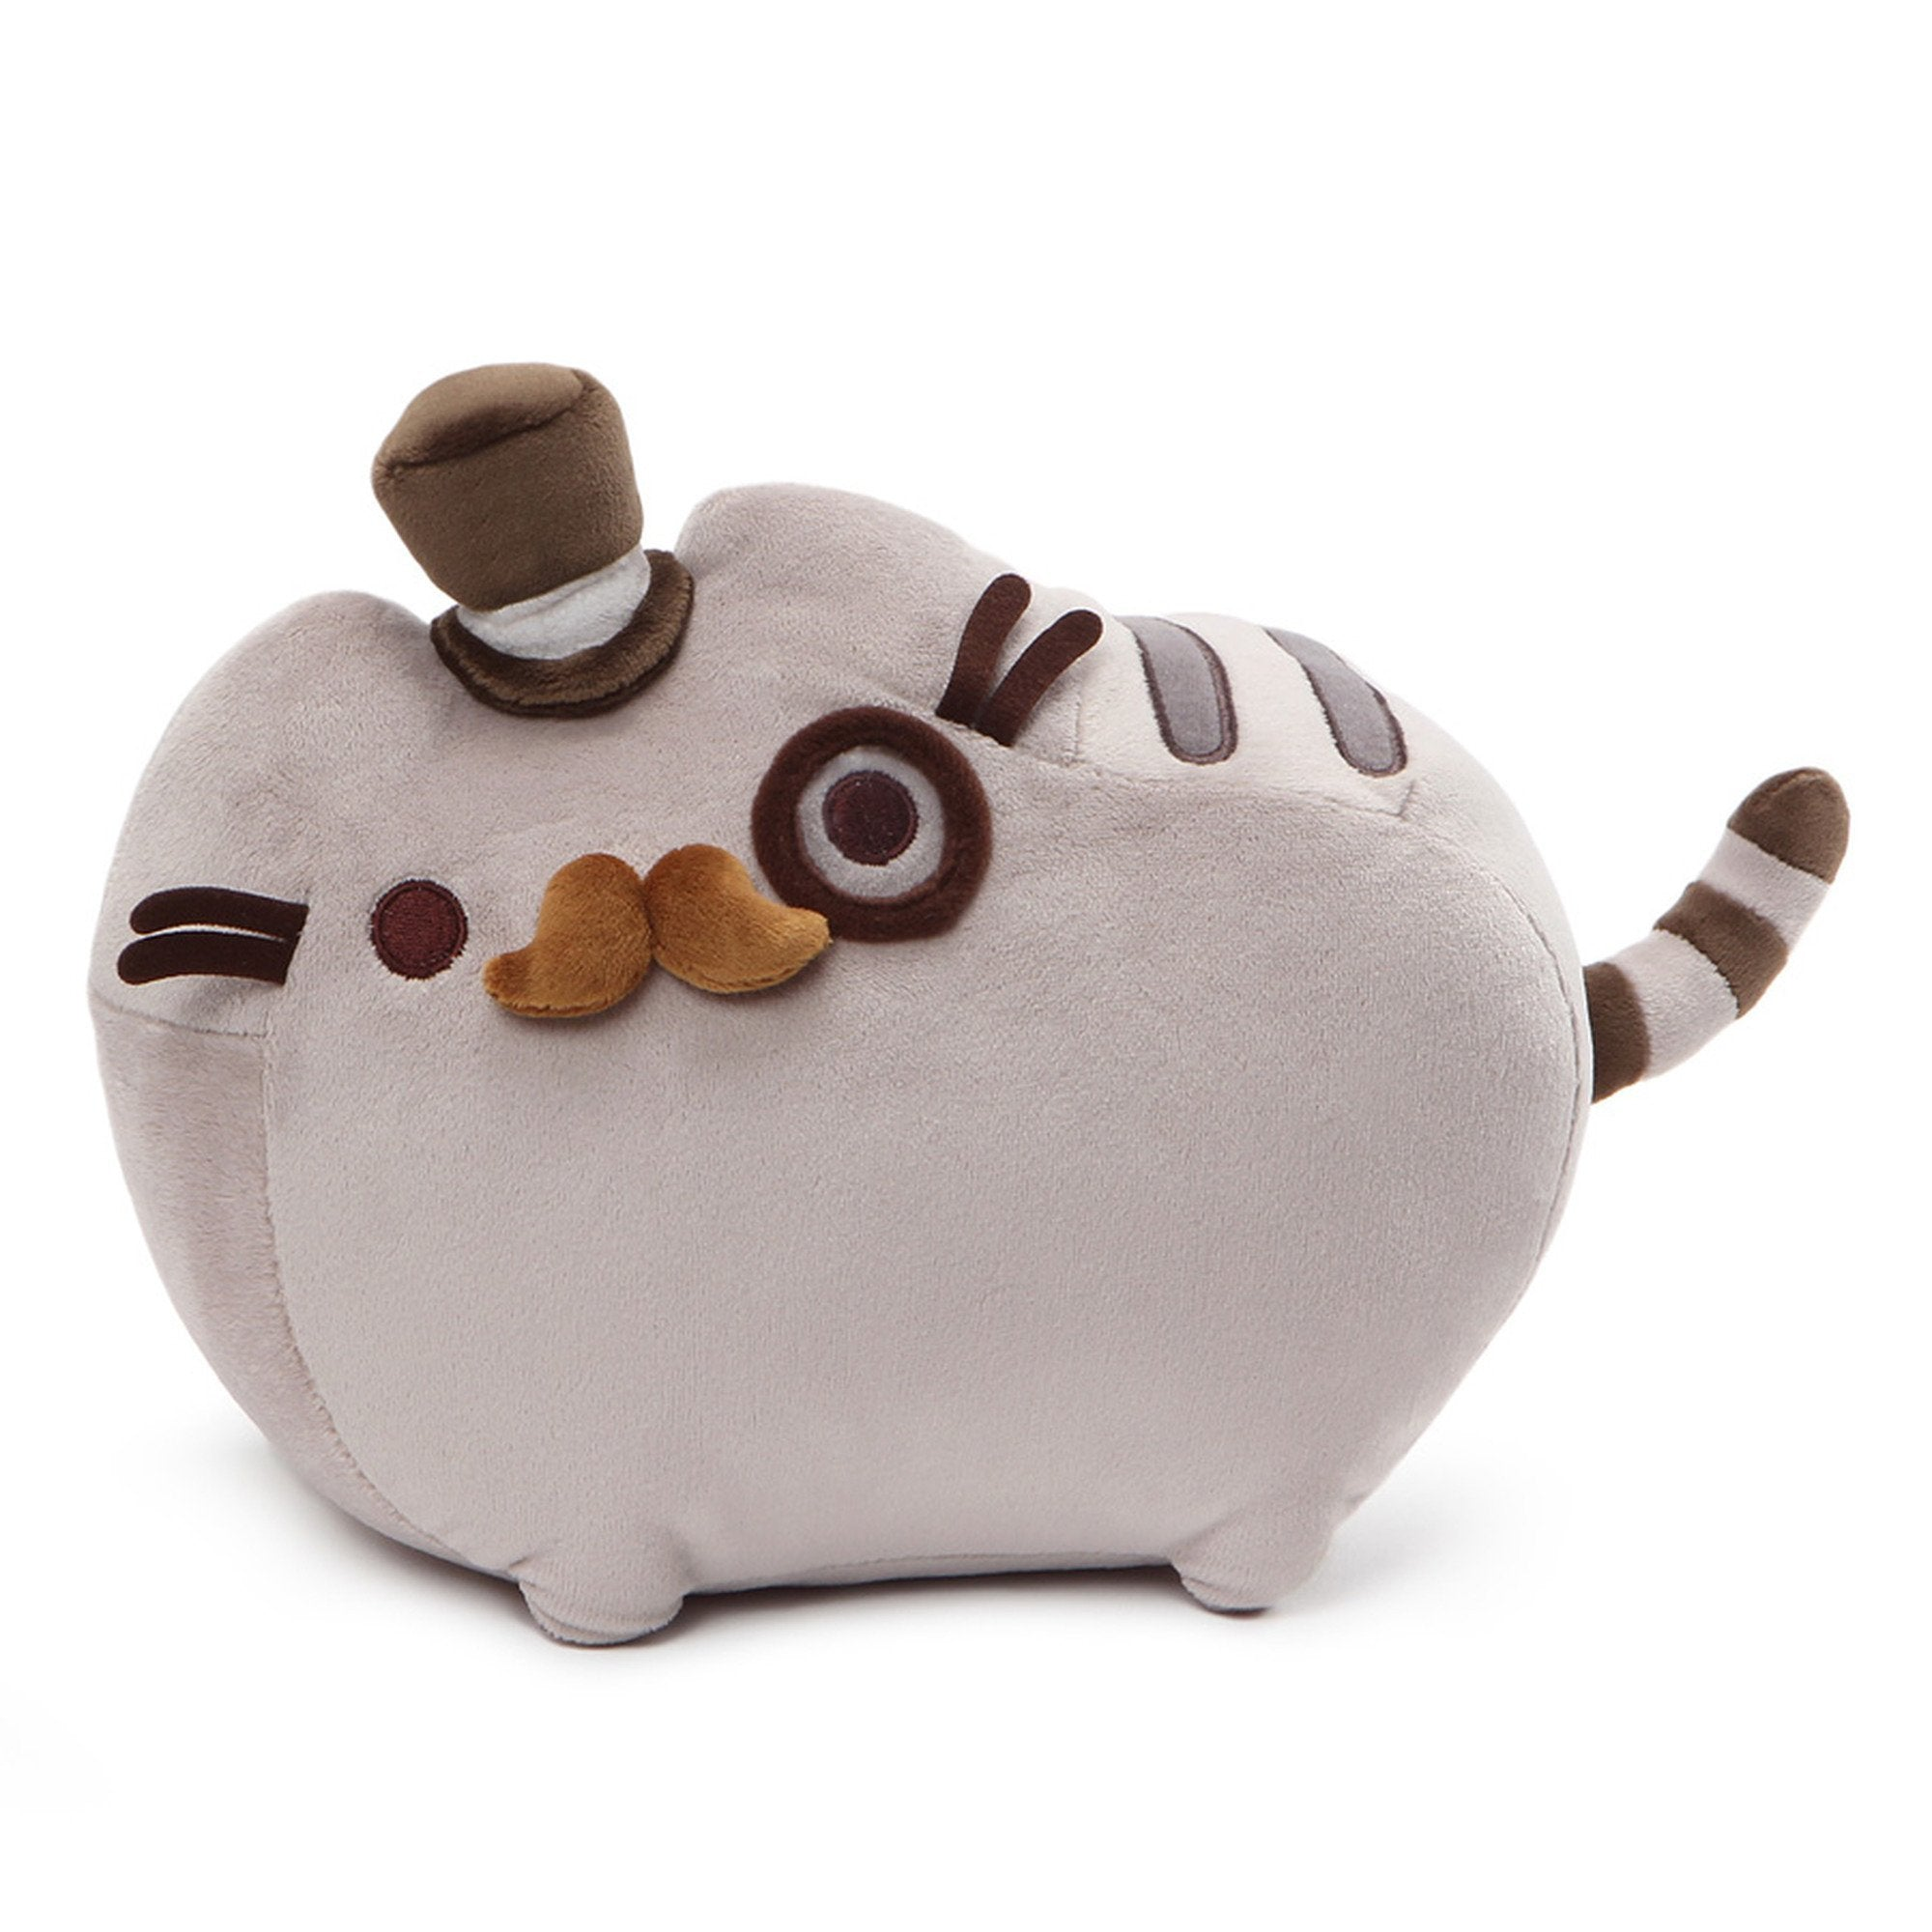 Pusheen the Cat Fancy Plush GUND